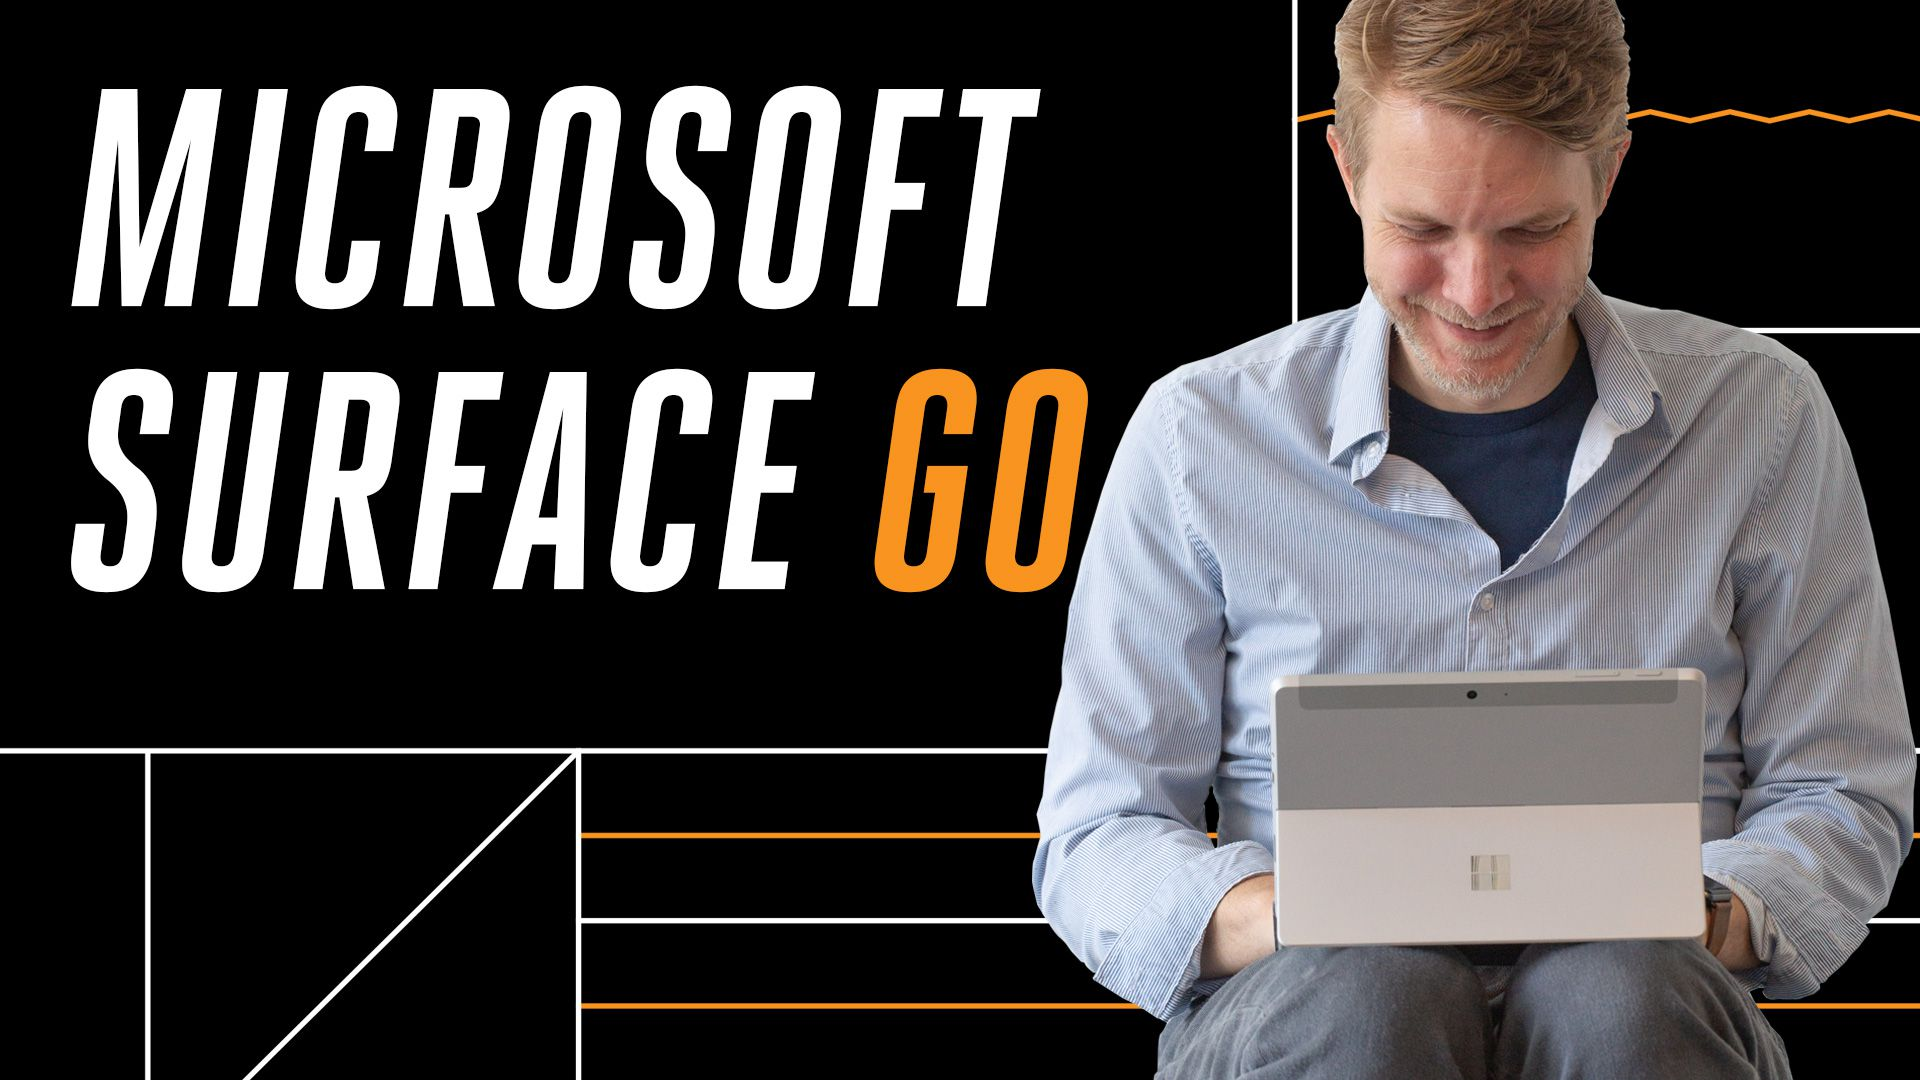 The tiny Microsoft Surface Go is available now, and it's an